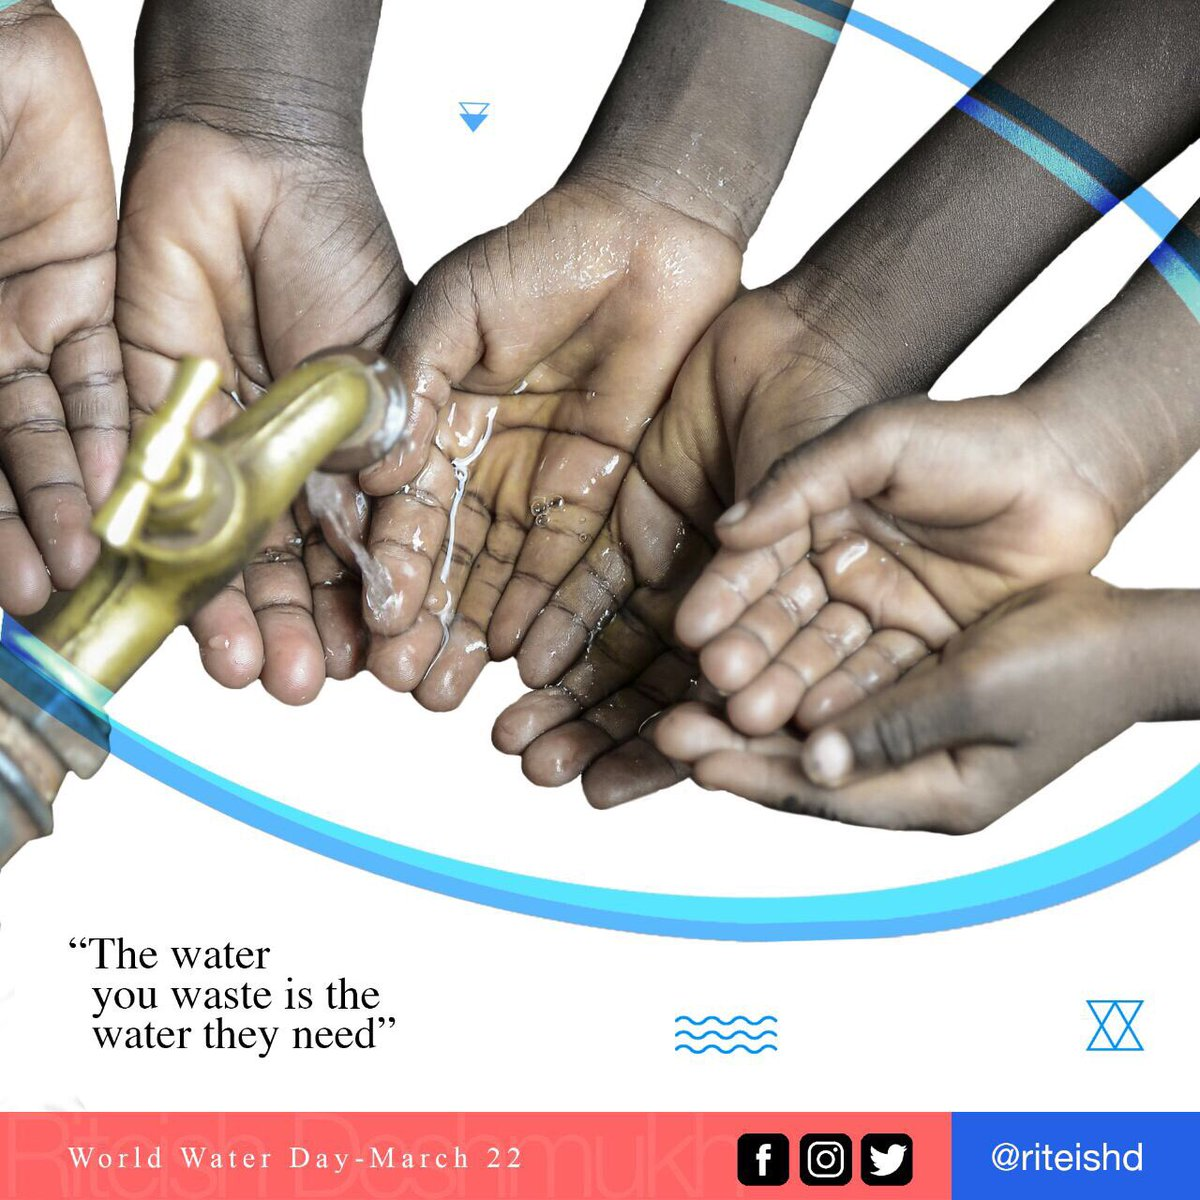 World Water Day - The water you waste is the water they need. https://...